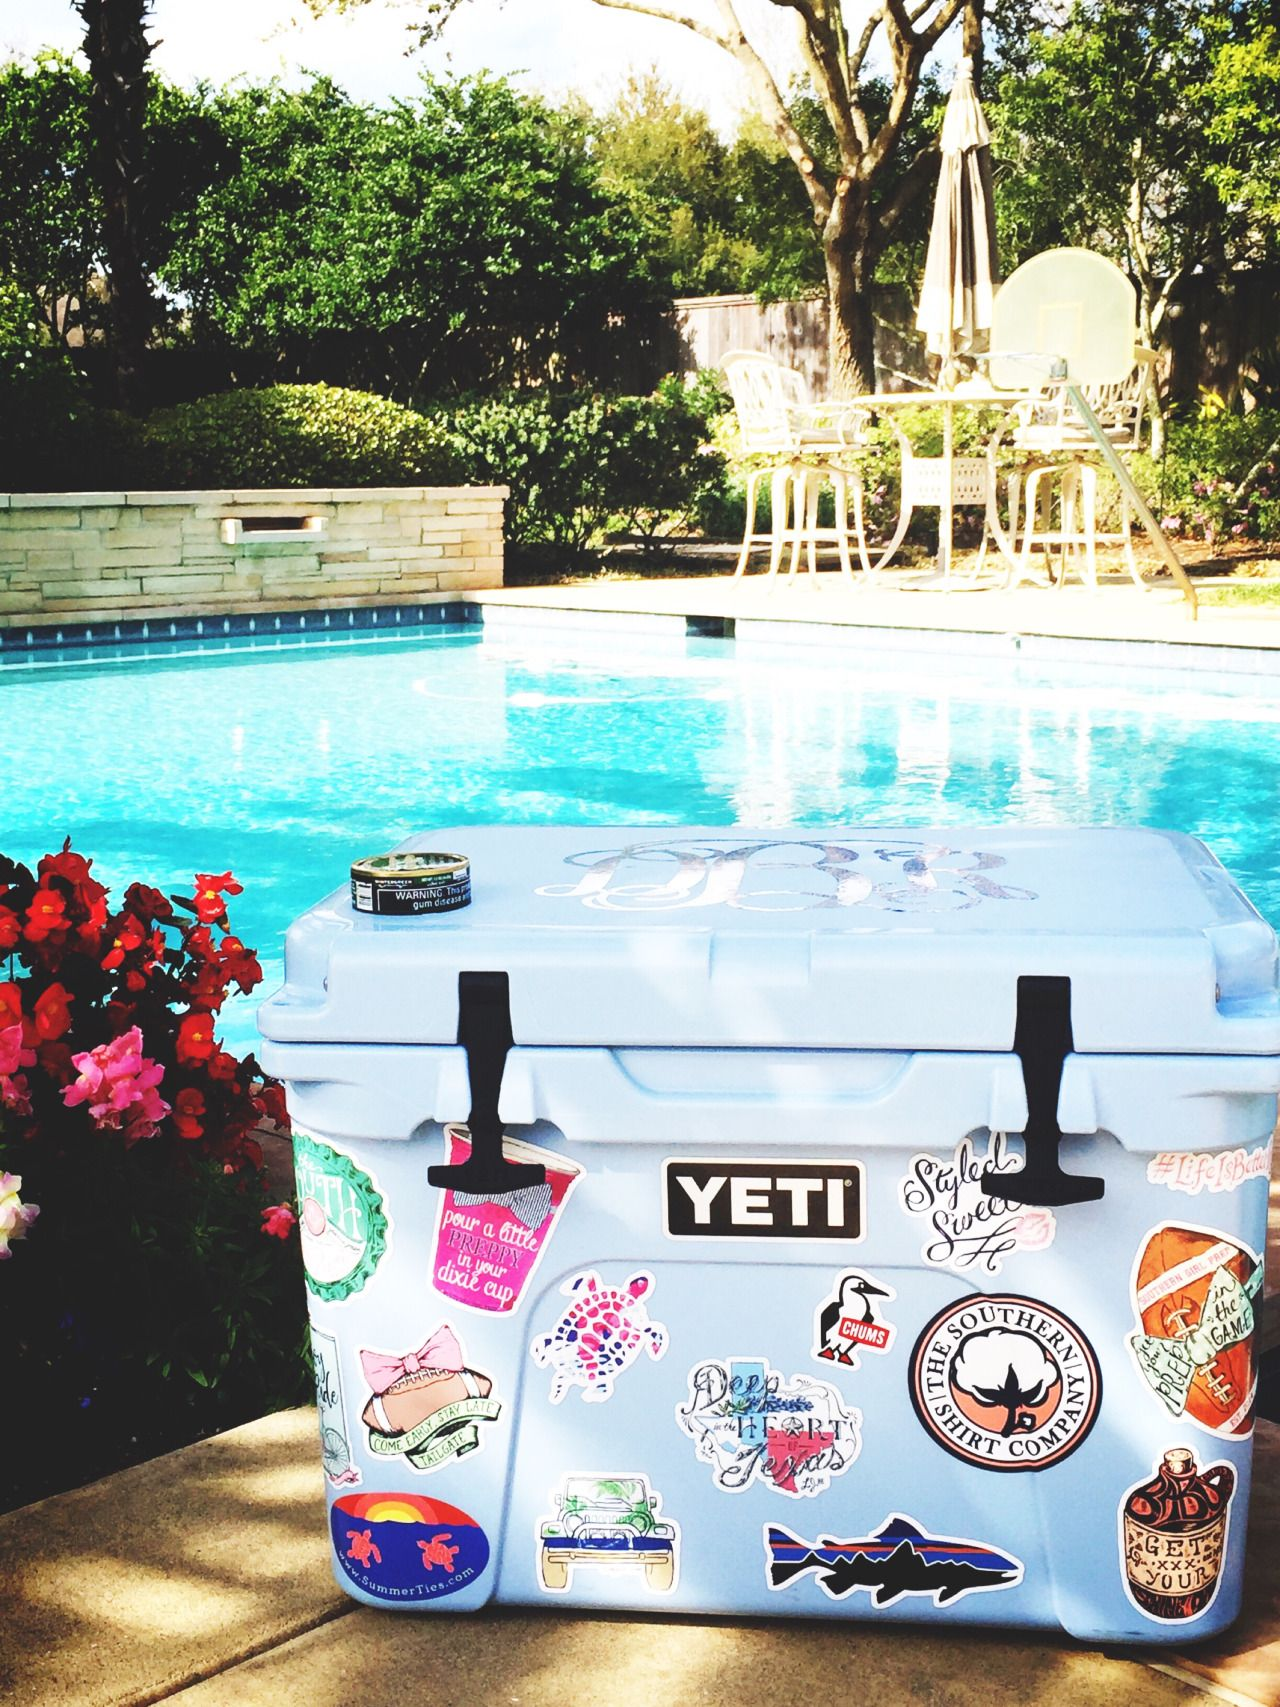 How To Get Stickers To Stick On A Yeti Cooler